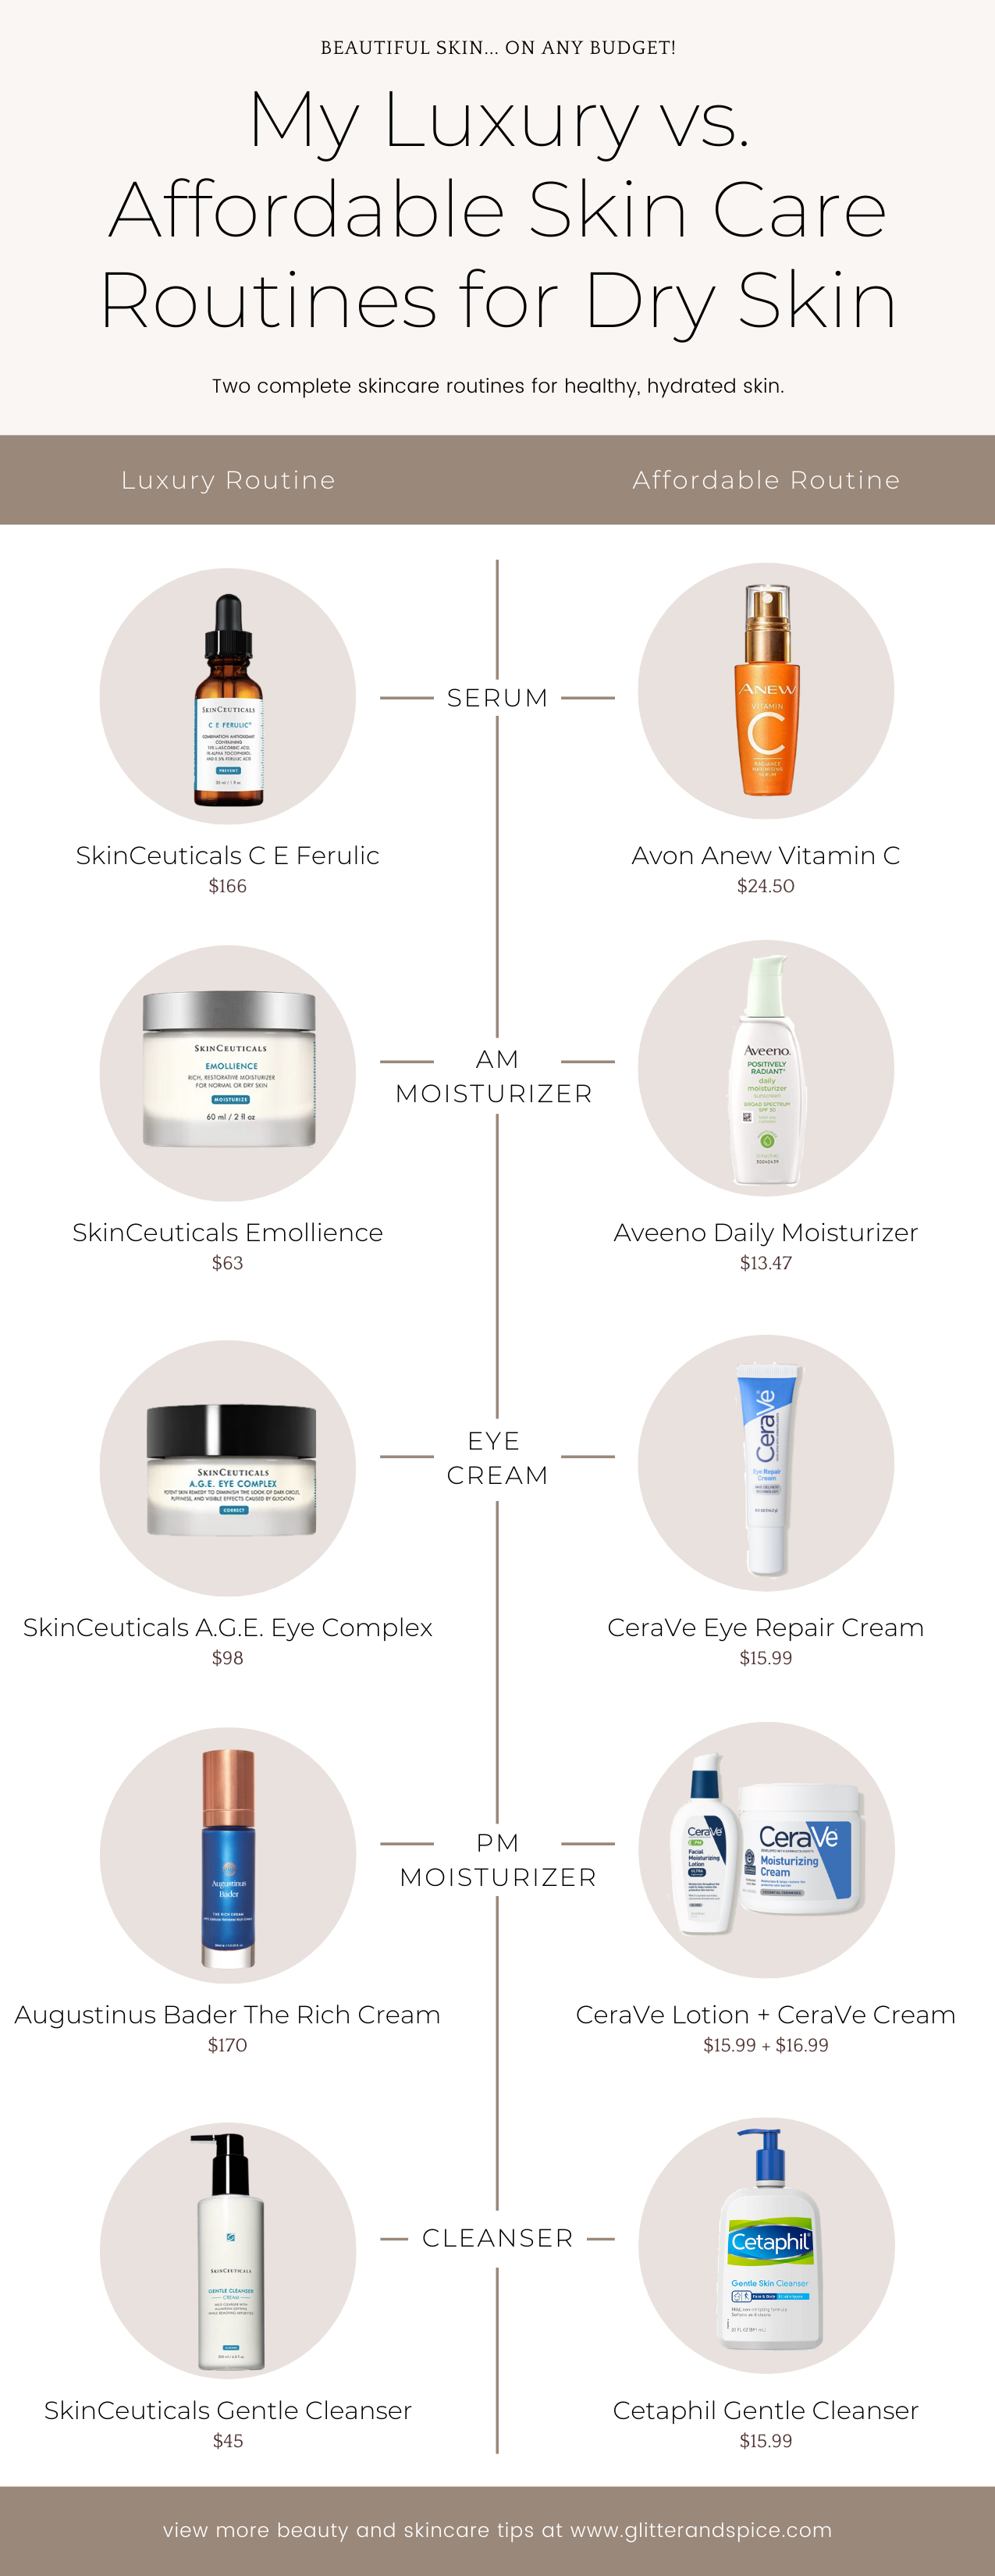 Luxury vs. Affordable Skin Care Routines for Dry Skin graphic comparing the two routines